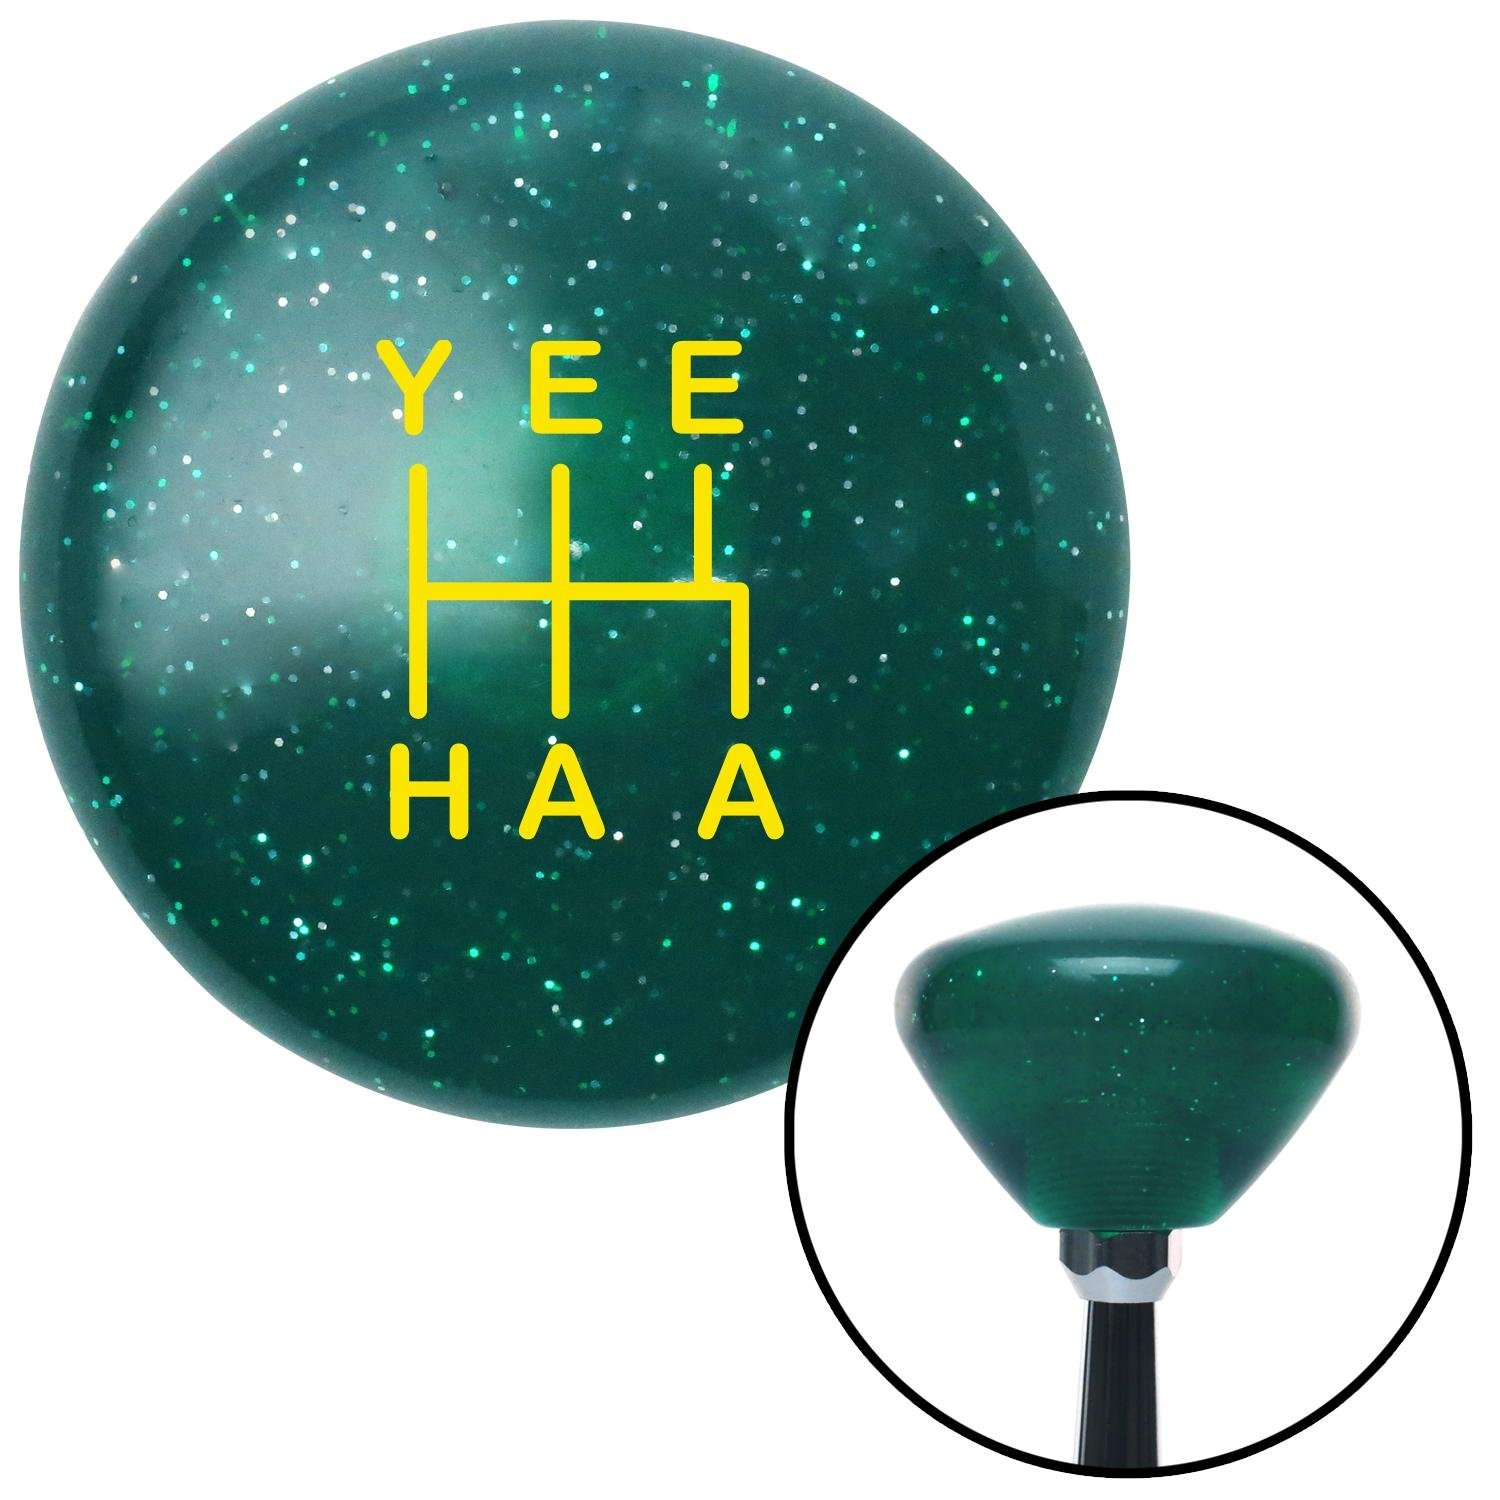 American Shifter 302151 Shift Knob Yellow YeeHaa 5 Speed Green Retro Metal Flake with M16 x 1.5 Insert